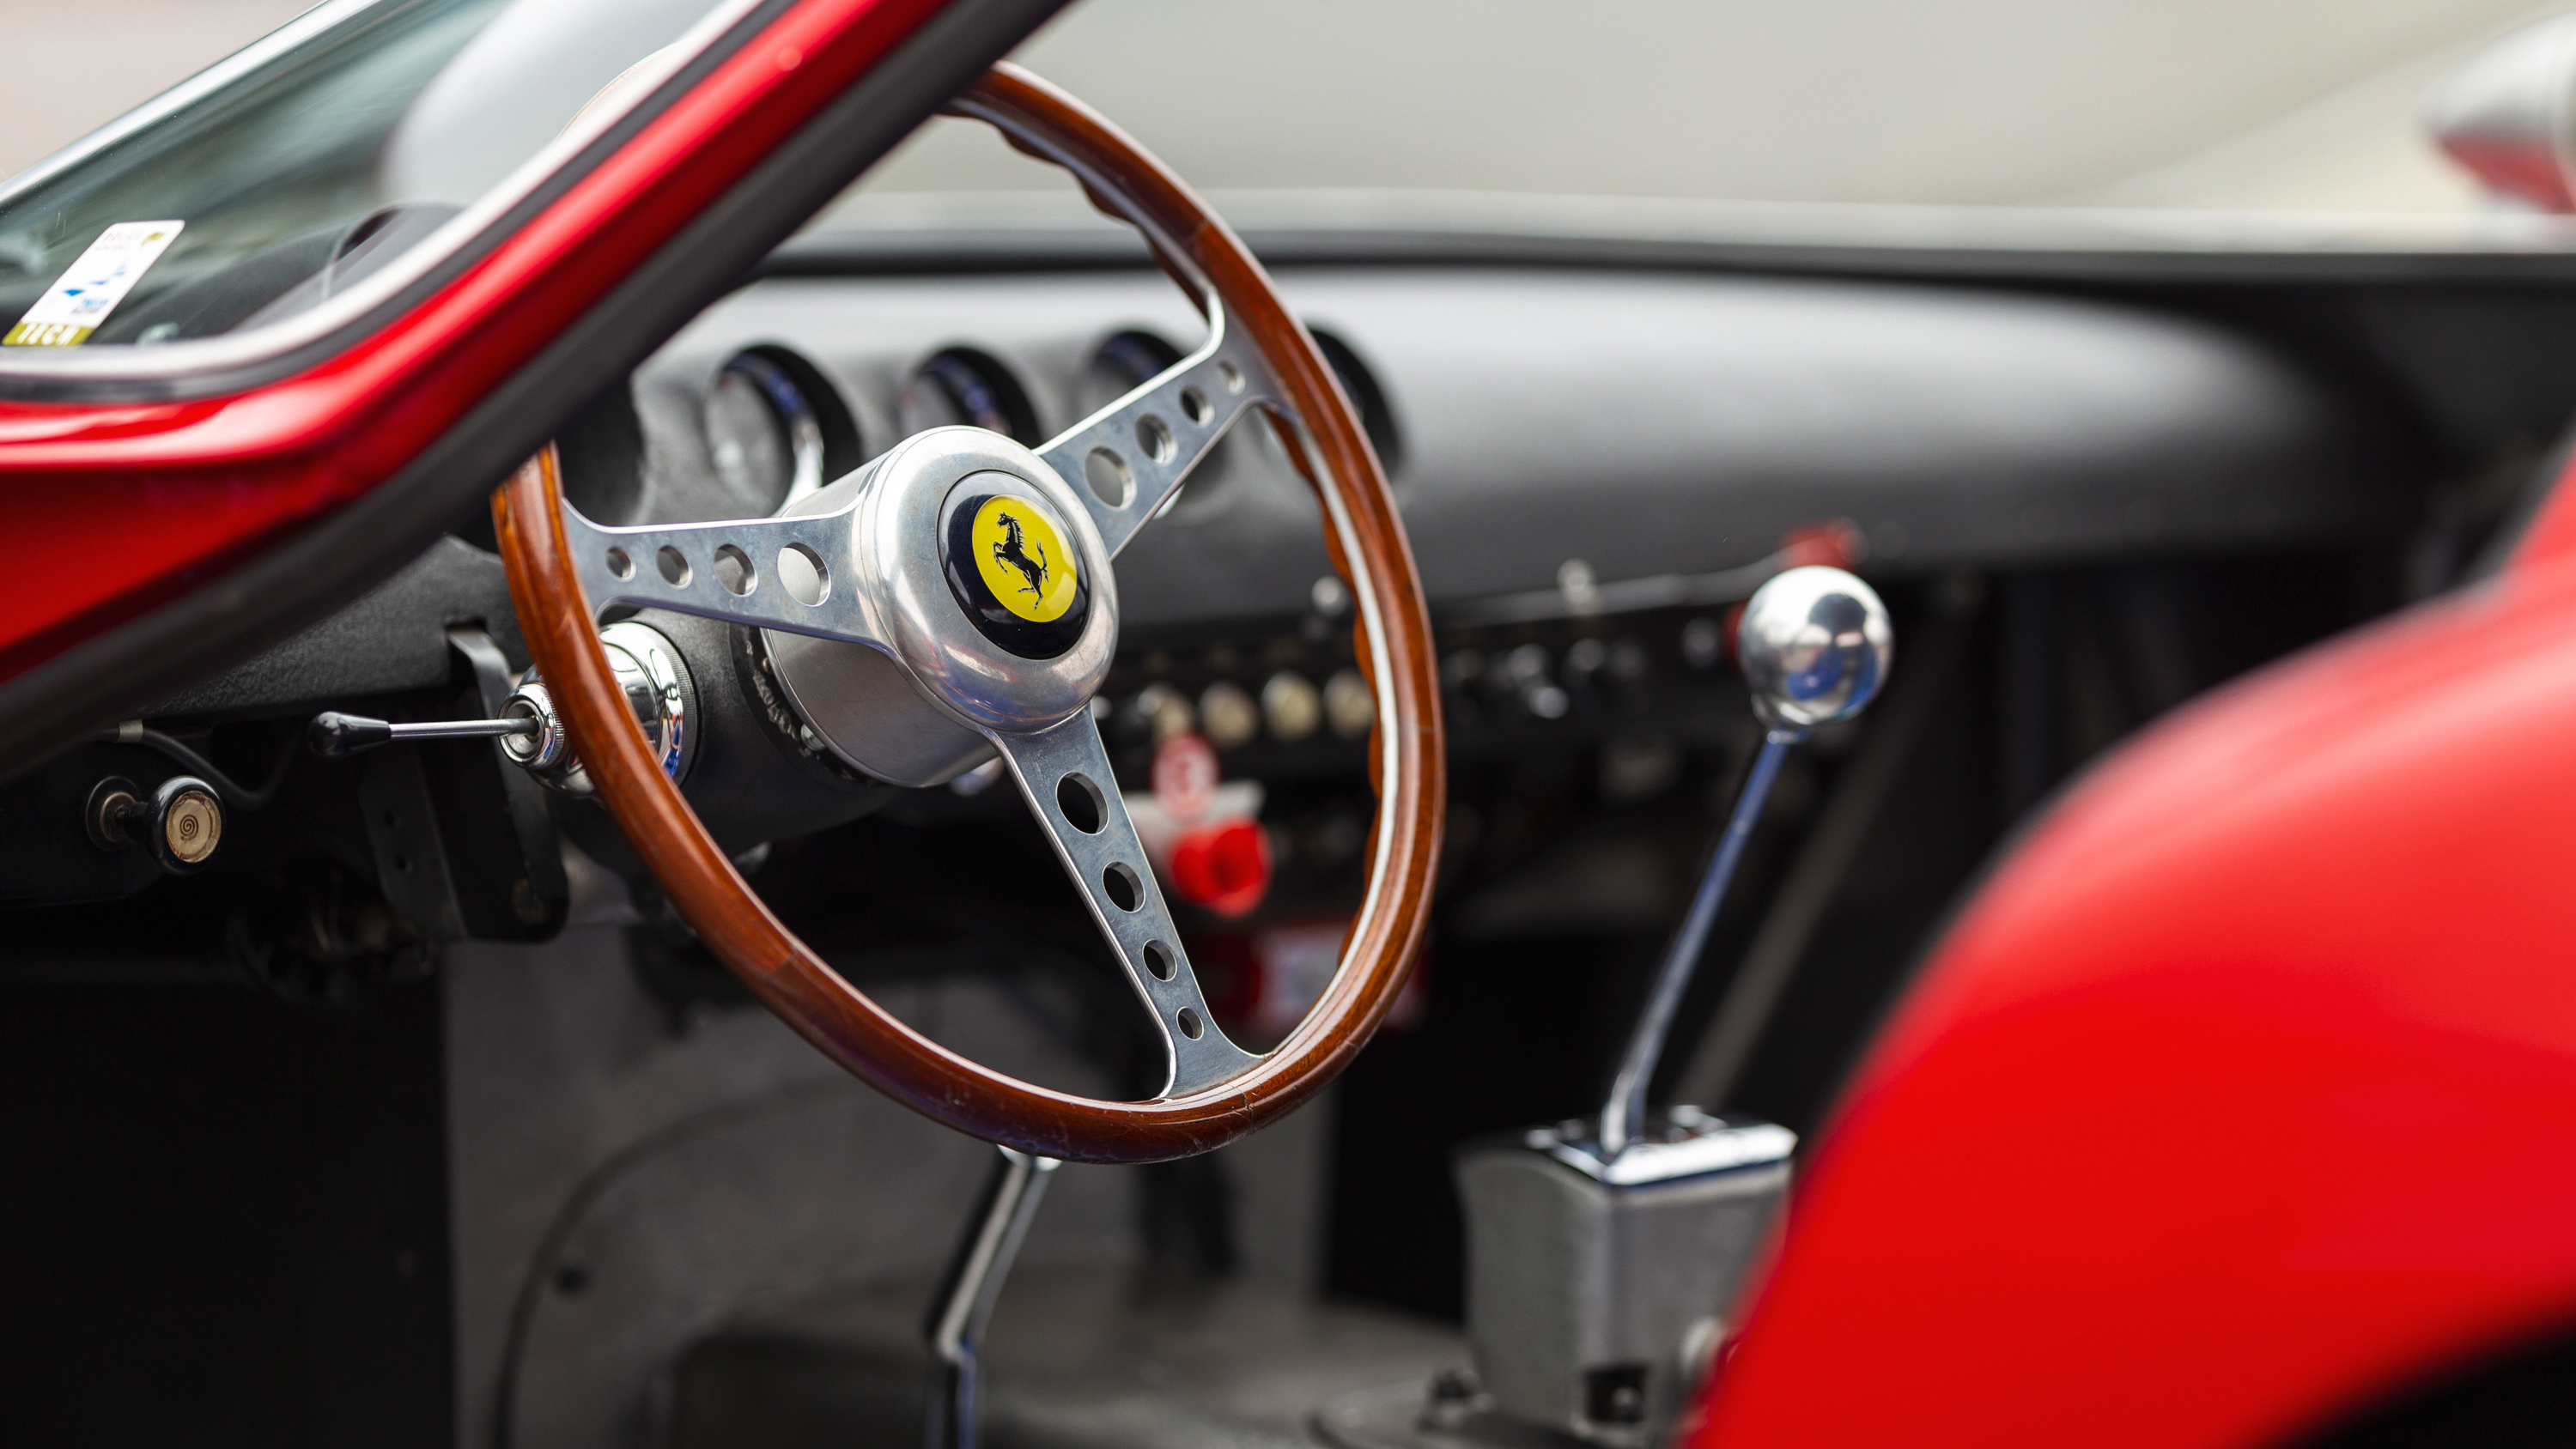 Ferrari 250 GTO with $45M estimate most expensive vehicle offered at auction